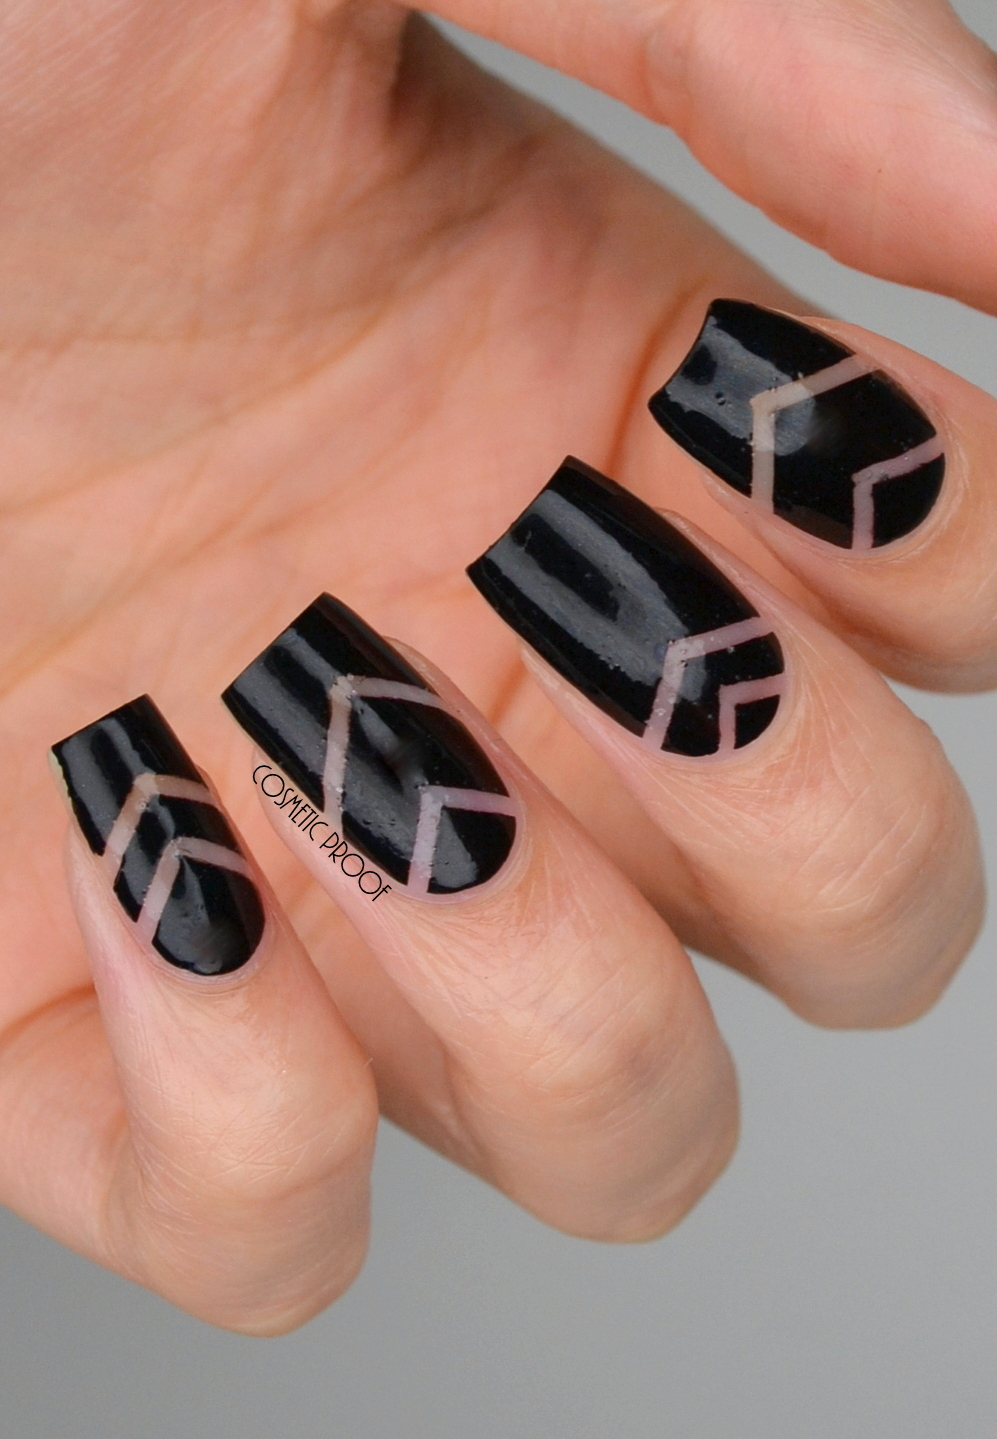 NAILS | BCD NAIL ART CHALLENGE WEEK 12 - The Negative Space Chevrons ...